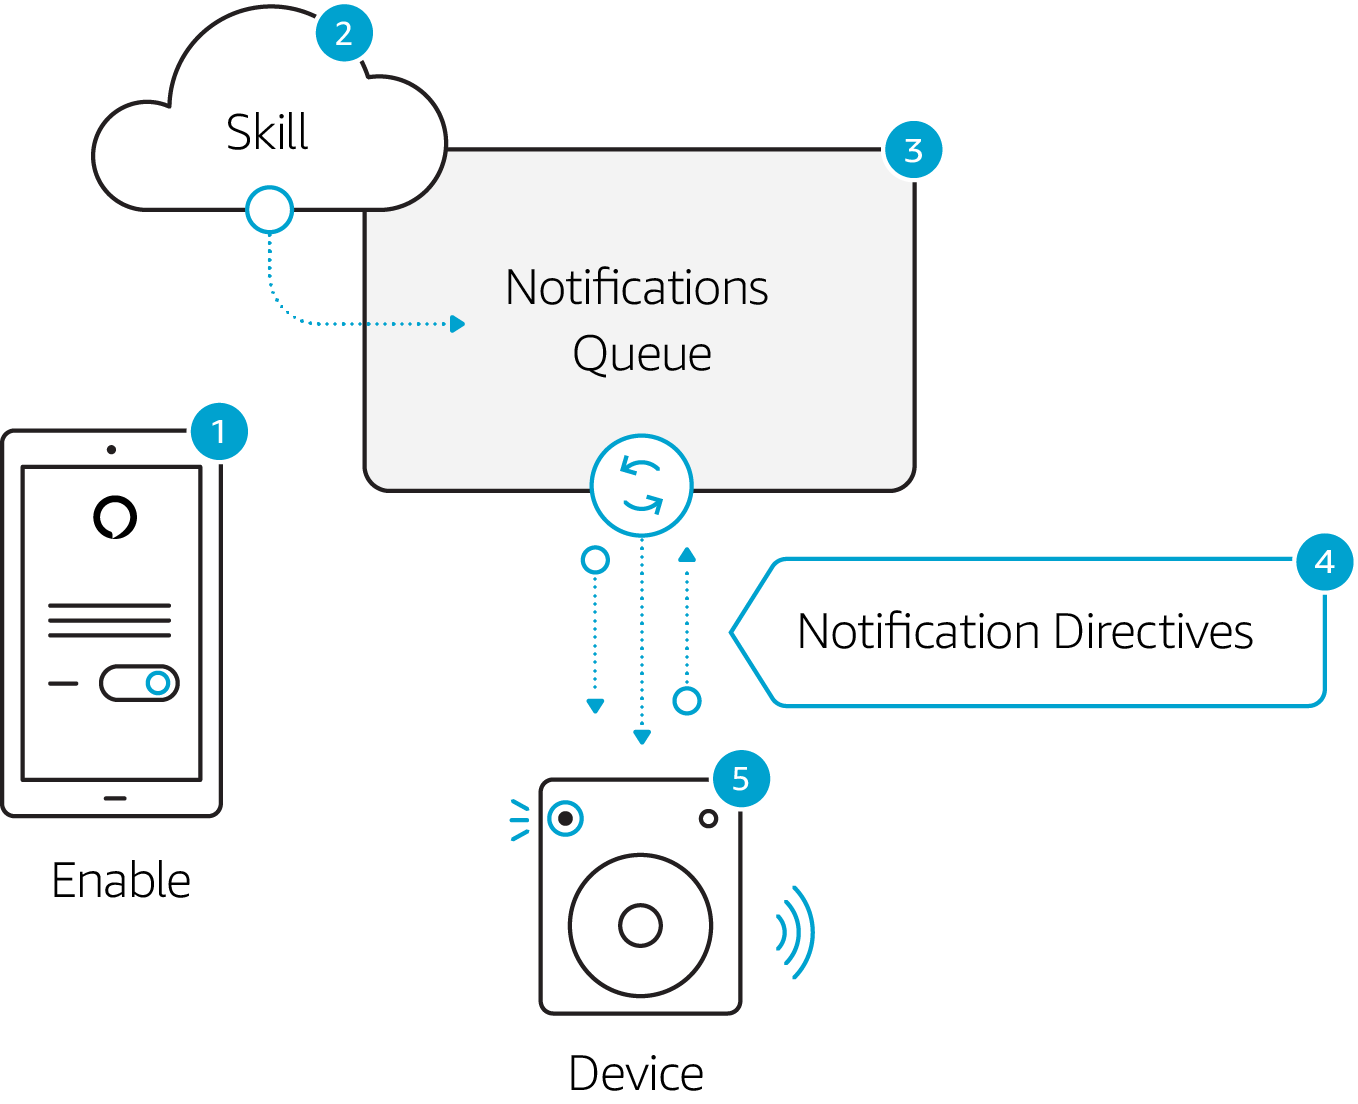 Notifications flow diagram.